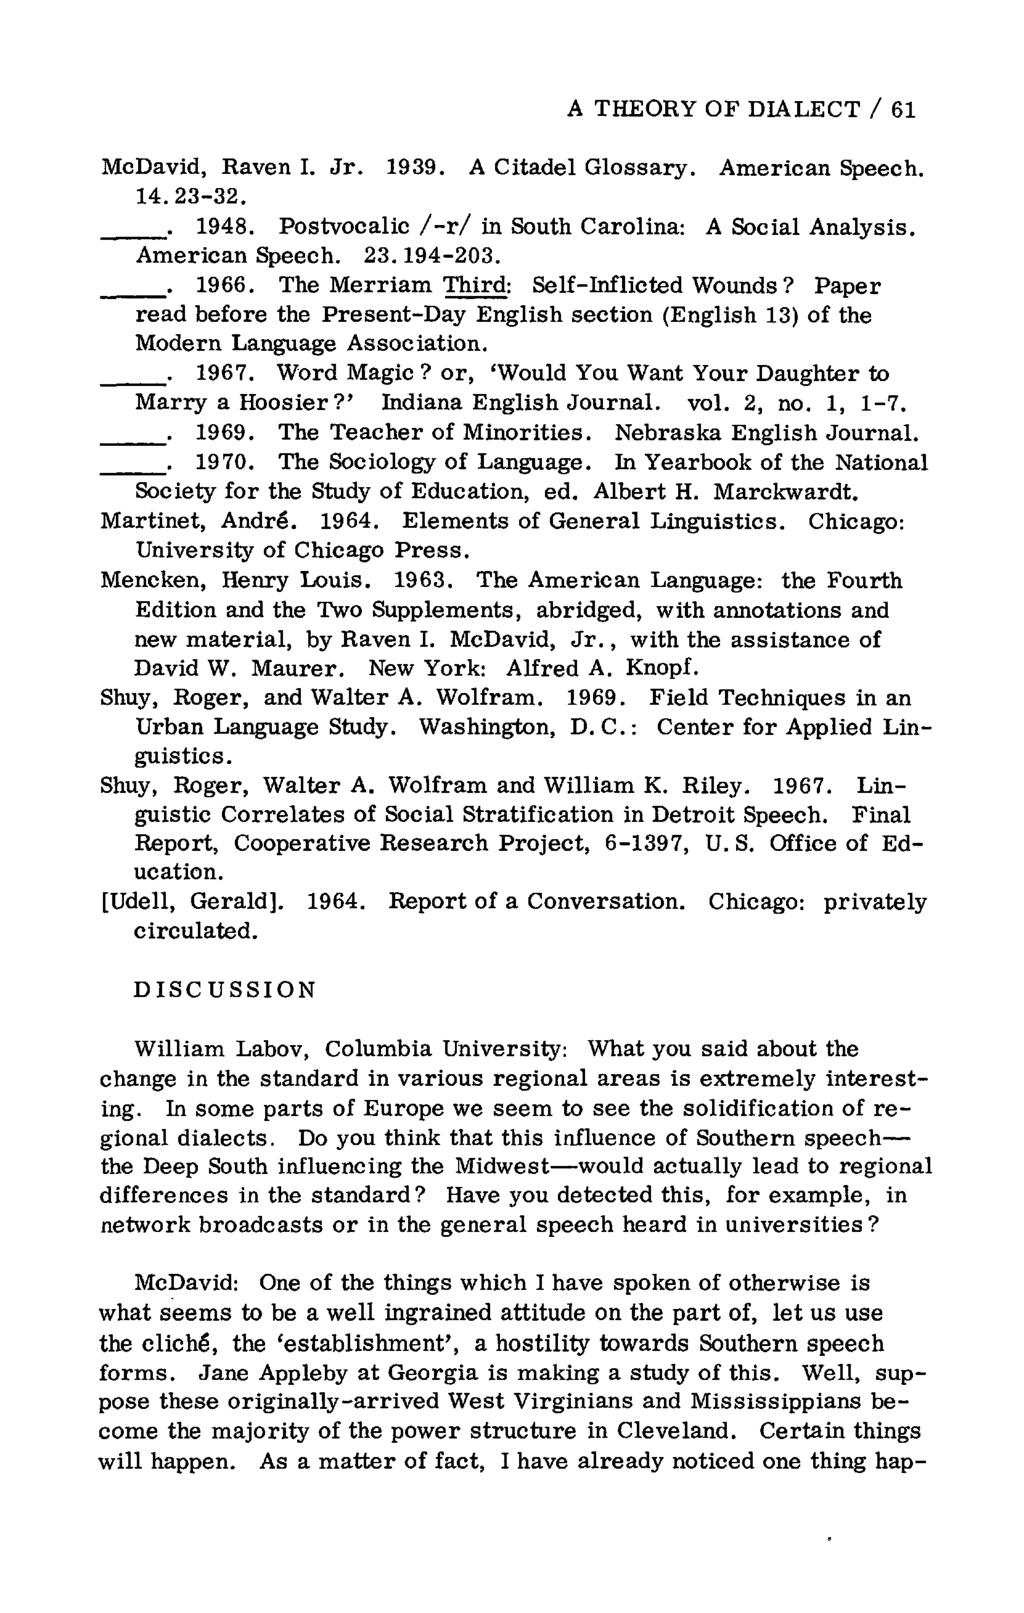 A THEORY OF DIALECT / 61 McDavid, Raven I. Jr. 1939. A Citadel Glossary. American Speech. 14.23-32.. 1948. Postvocalic /-r/ in South Carolina: A Social Analysis. American Speech. 23.194-203.. 1966.